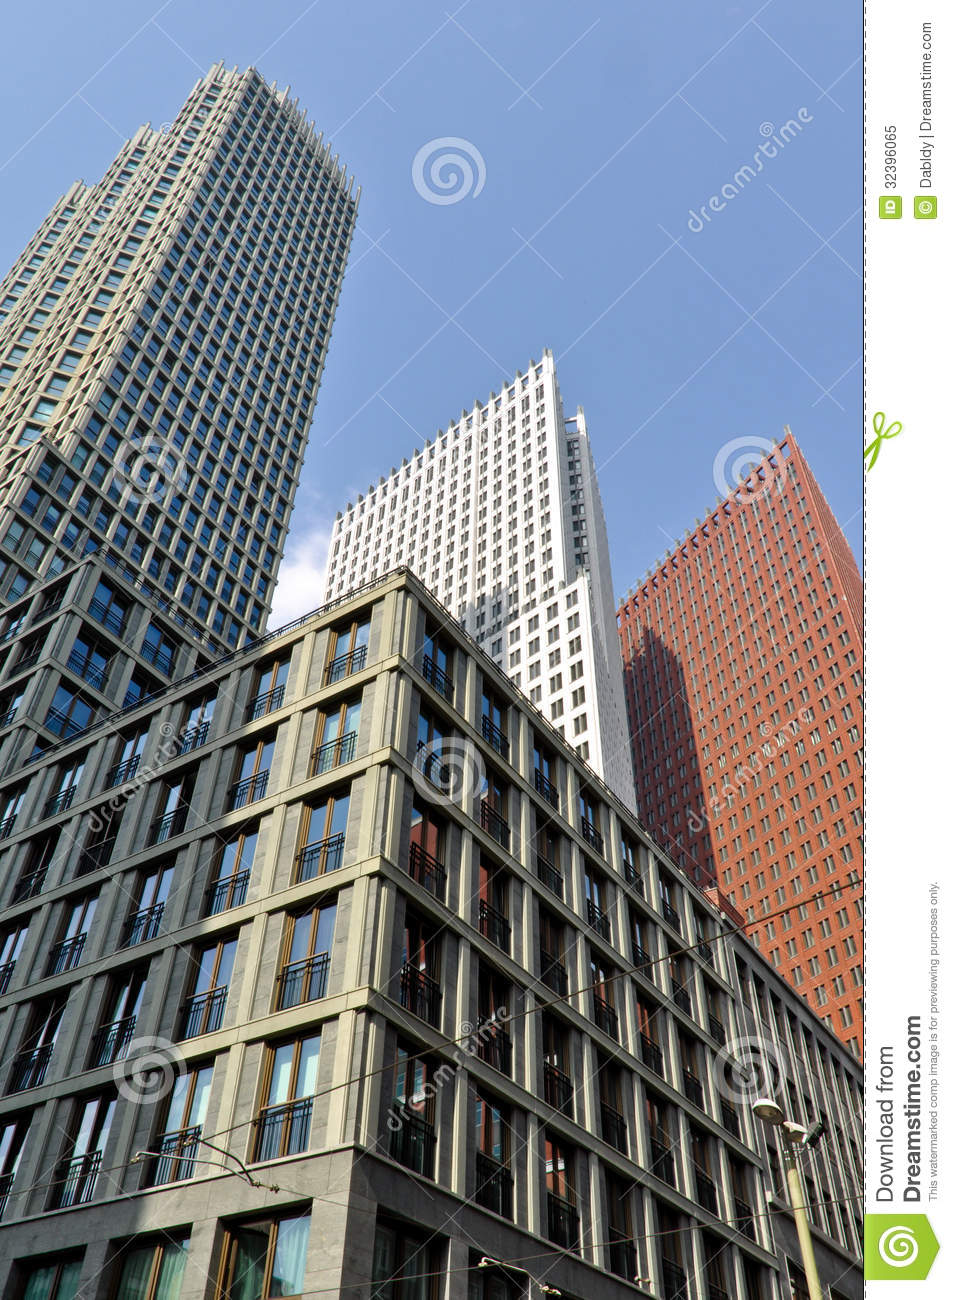 New modern apartment buildings royalty free stock photo for New modern buildings